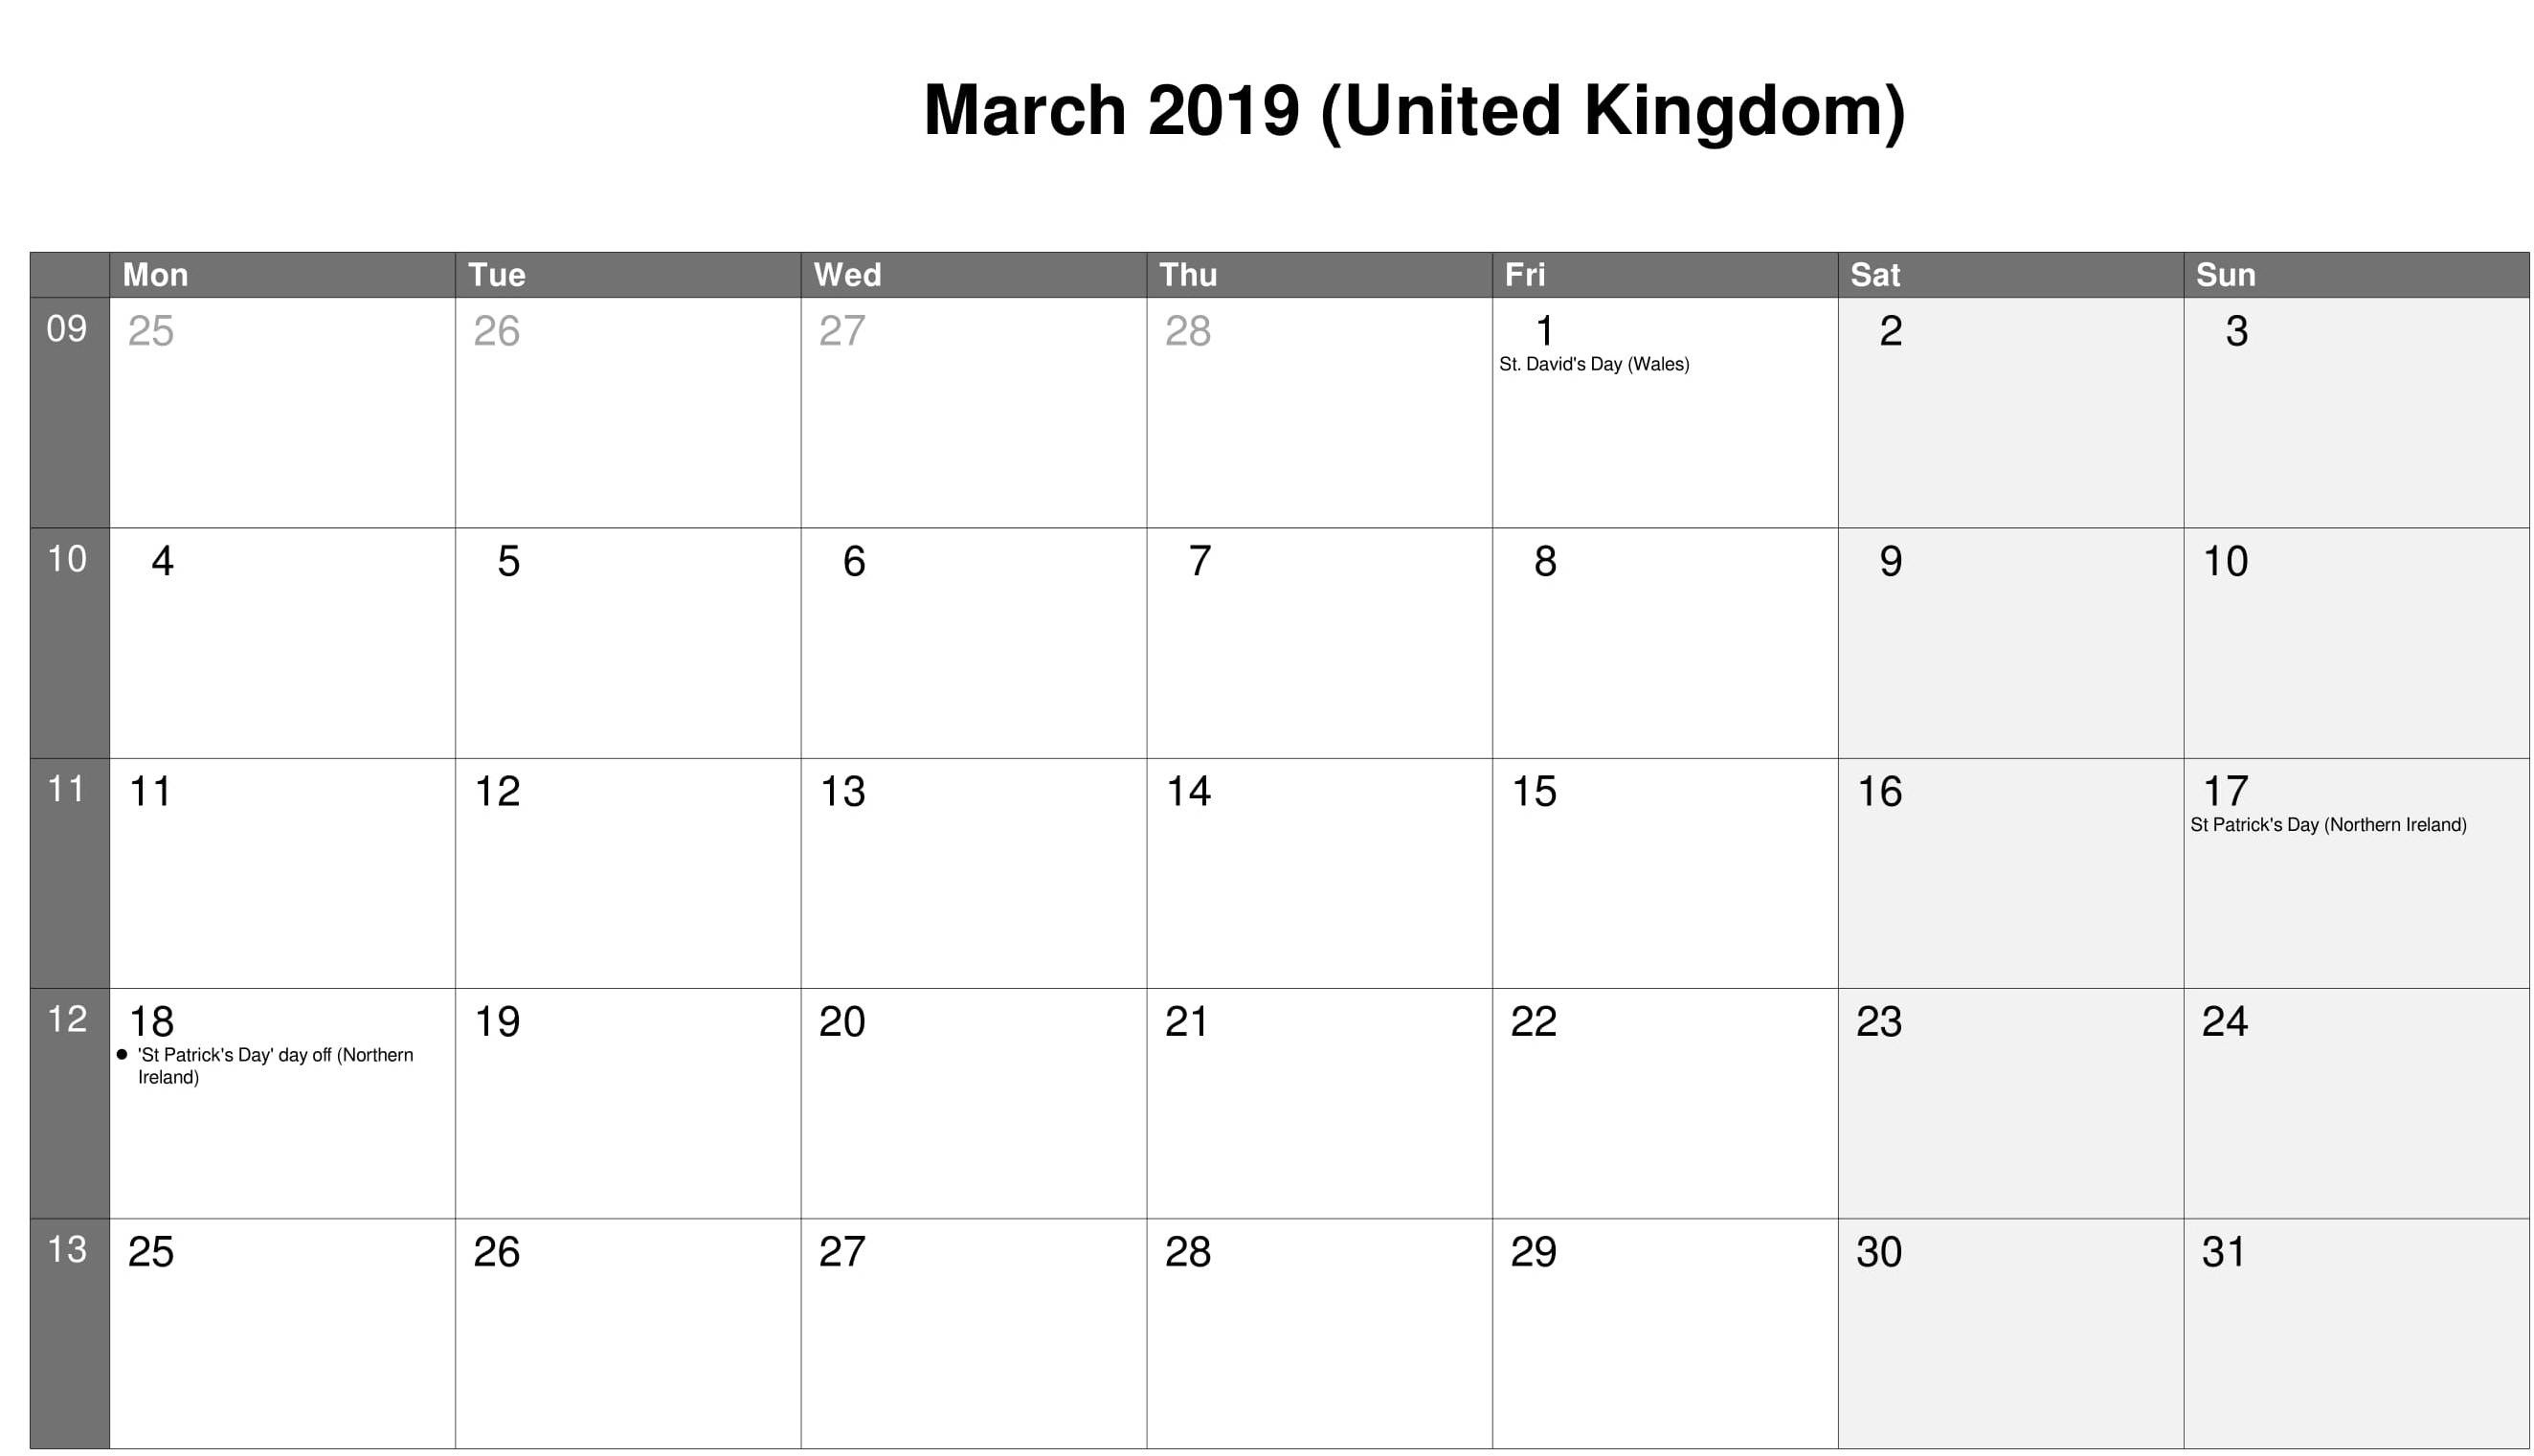 UK Calendar For March 2019